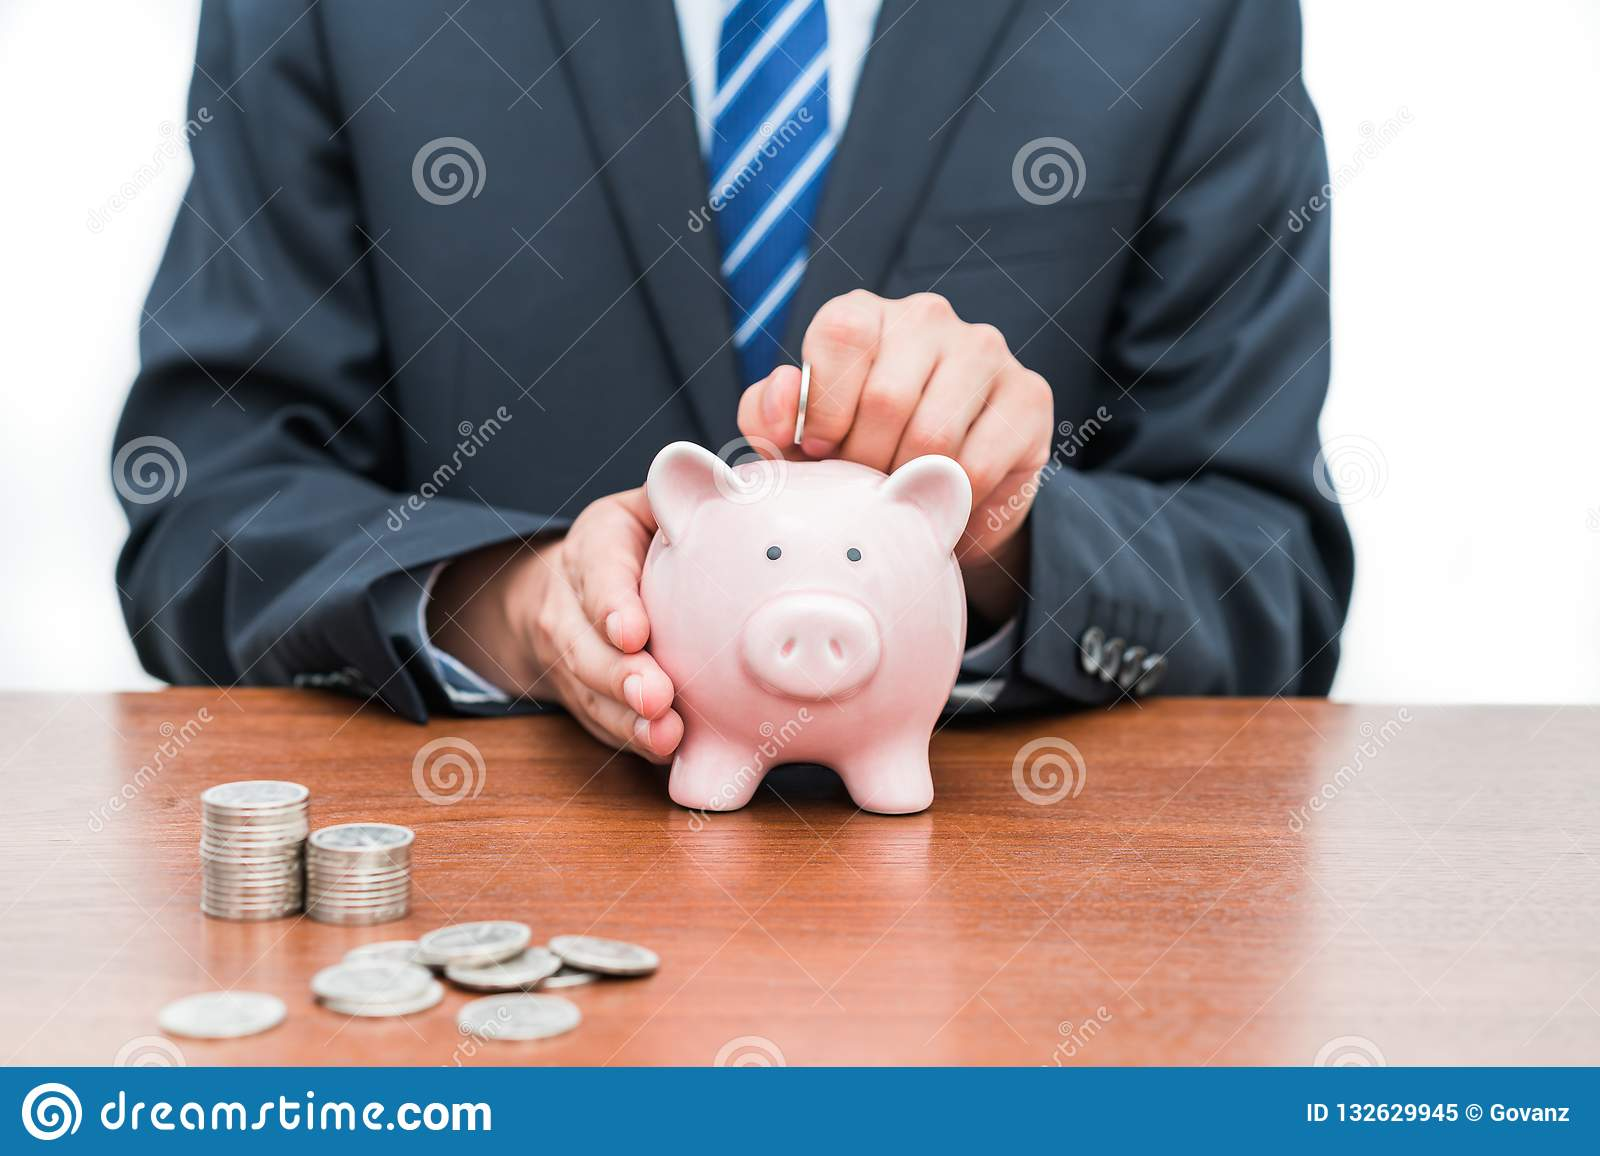 Putting coins into piggy Bank-The concept of savings